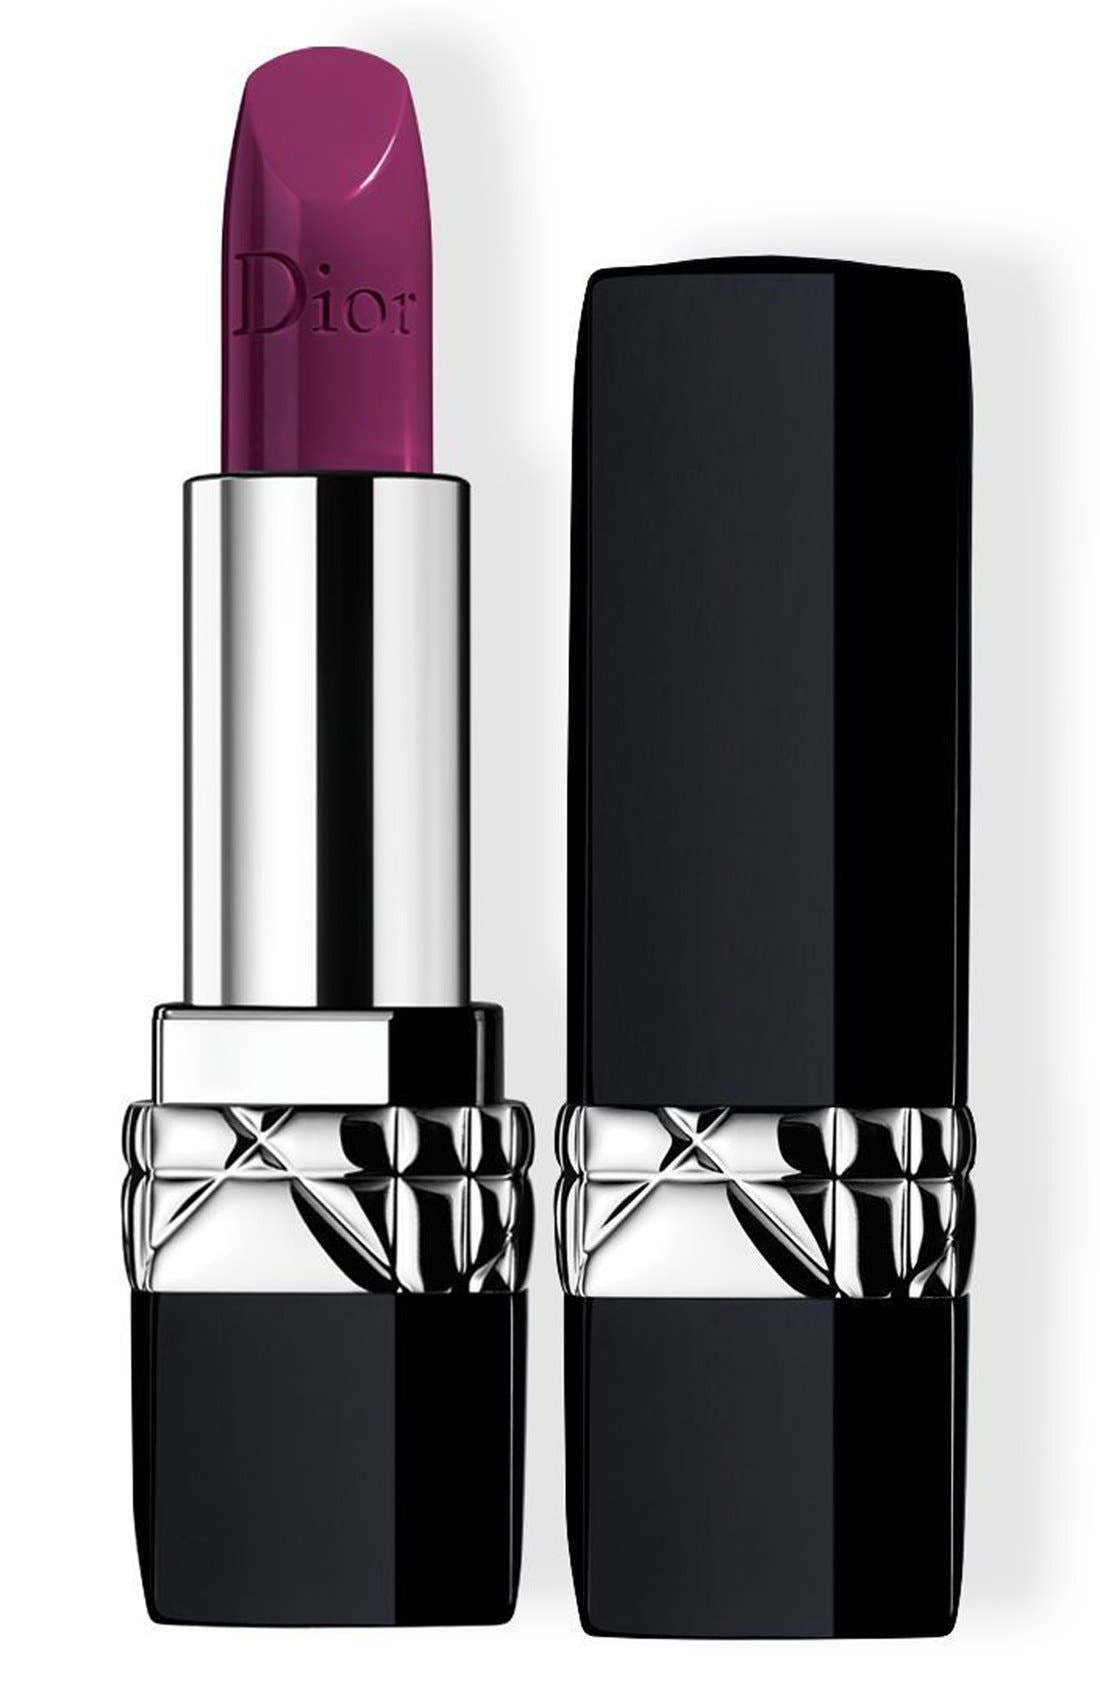 Dior Couture Color Rouge Dior Lipstick - 994 Mysterieuse